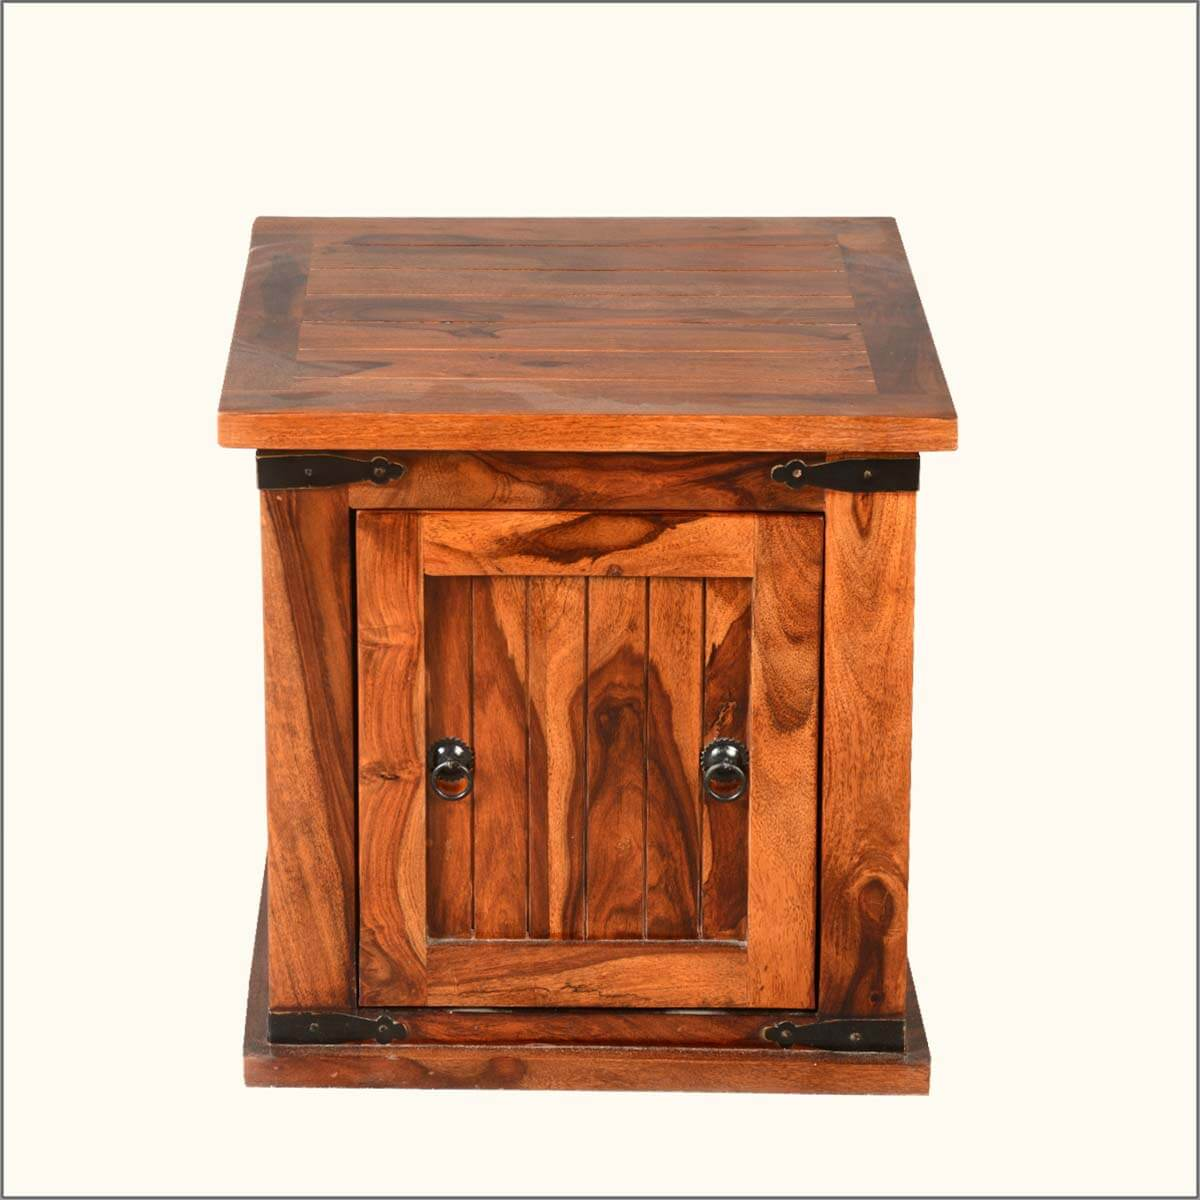 Sofa End Tables With Storage Solid Wood Square Storage Box Trunk Sofa Side End Table